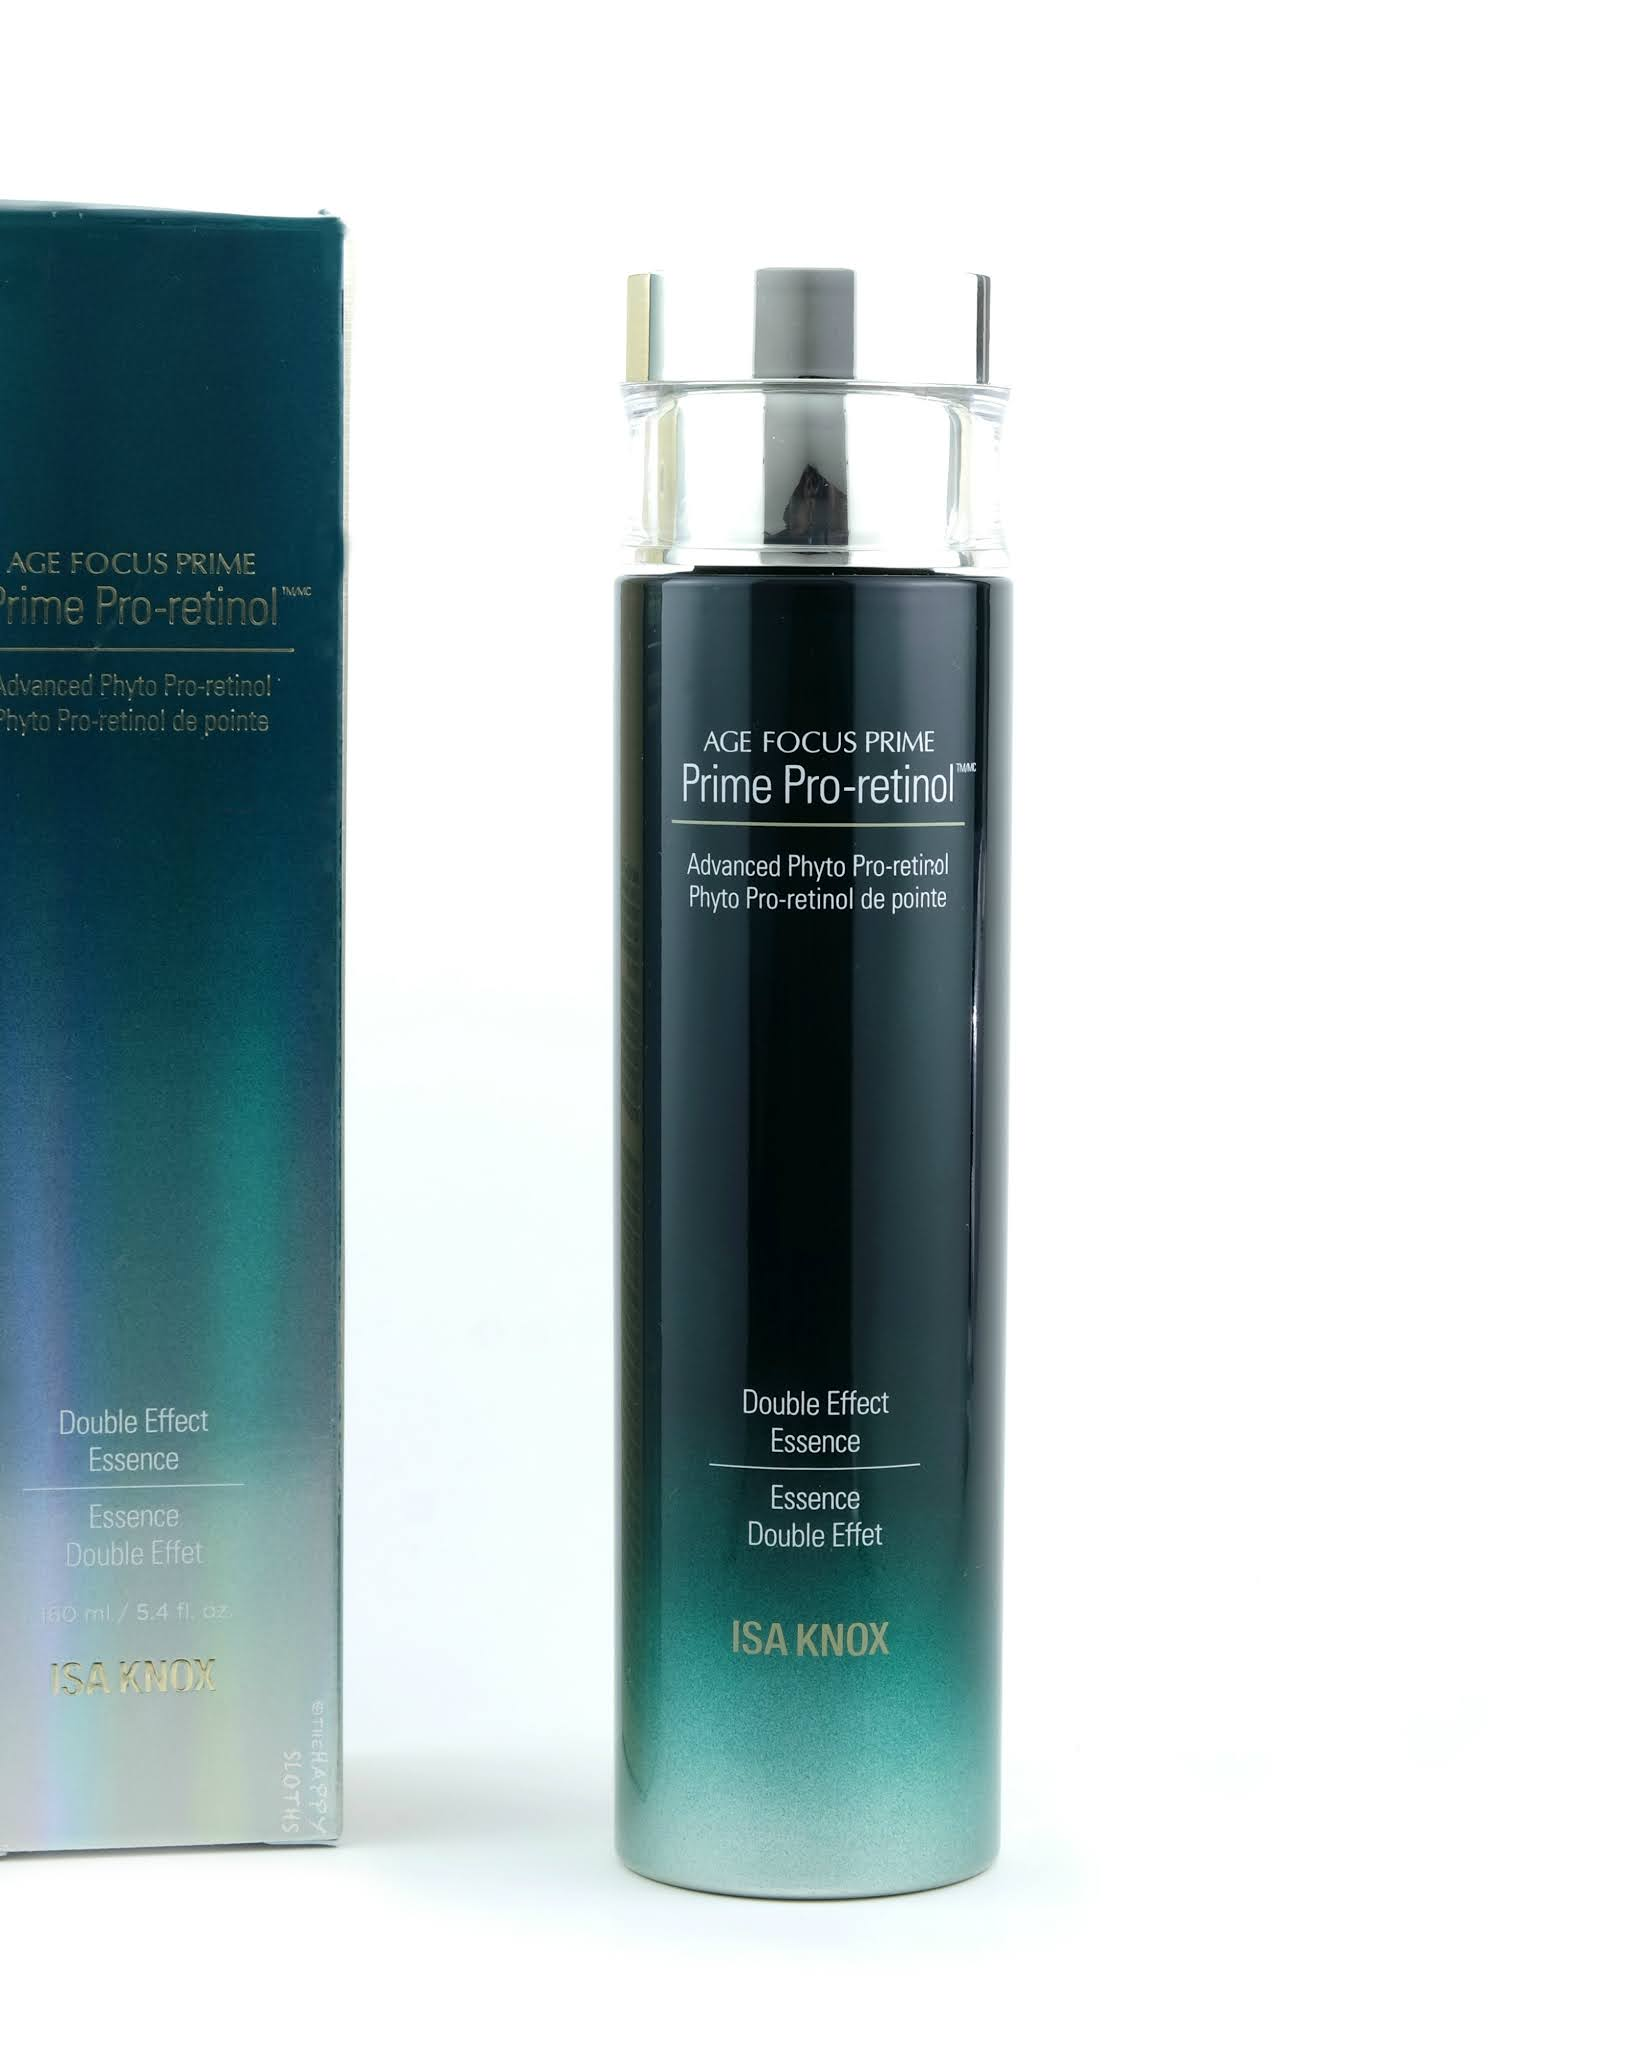 Isa Knox | Age Focus Prime Double Effect Essence: Review